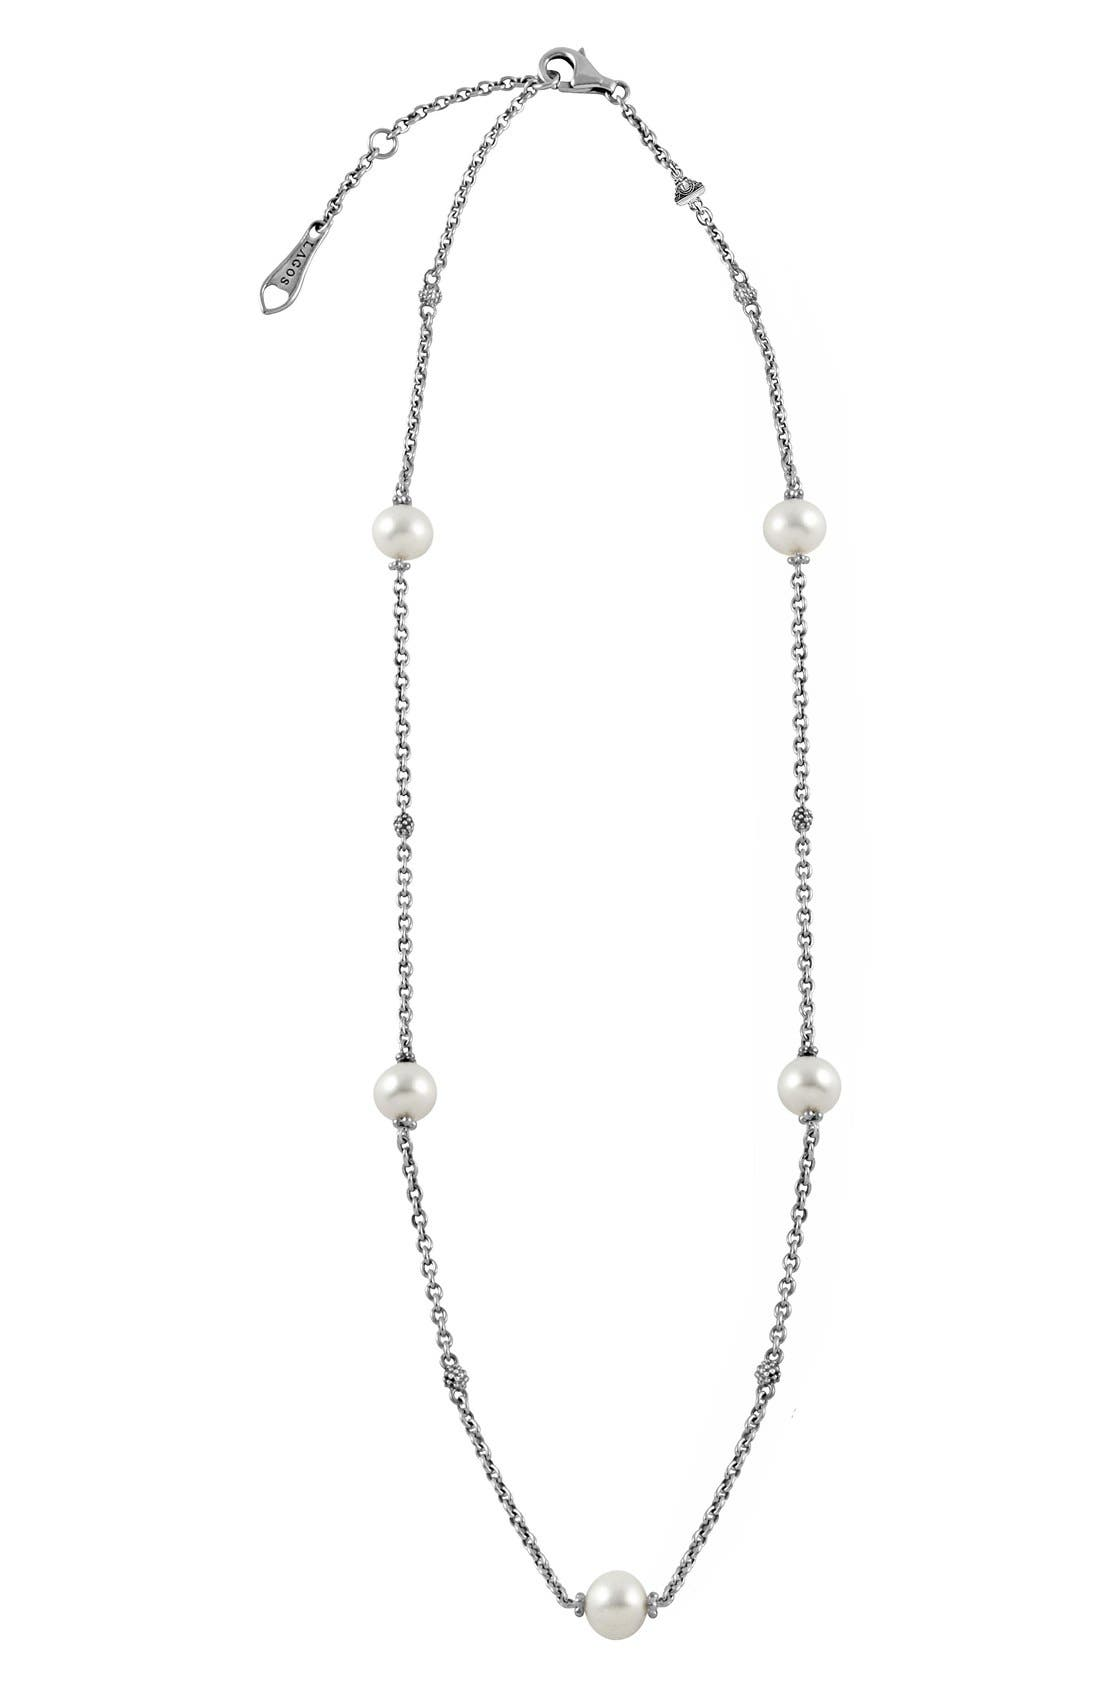 Main Image - LAGOS 'Luna' Pearl Station Necklace